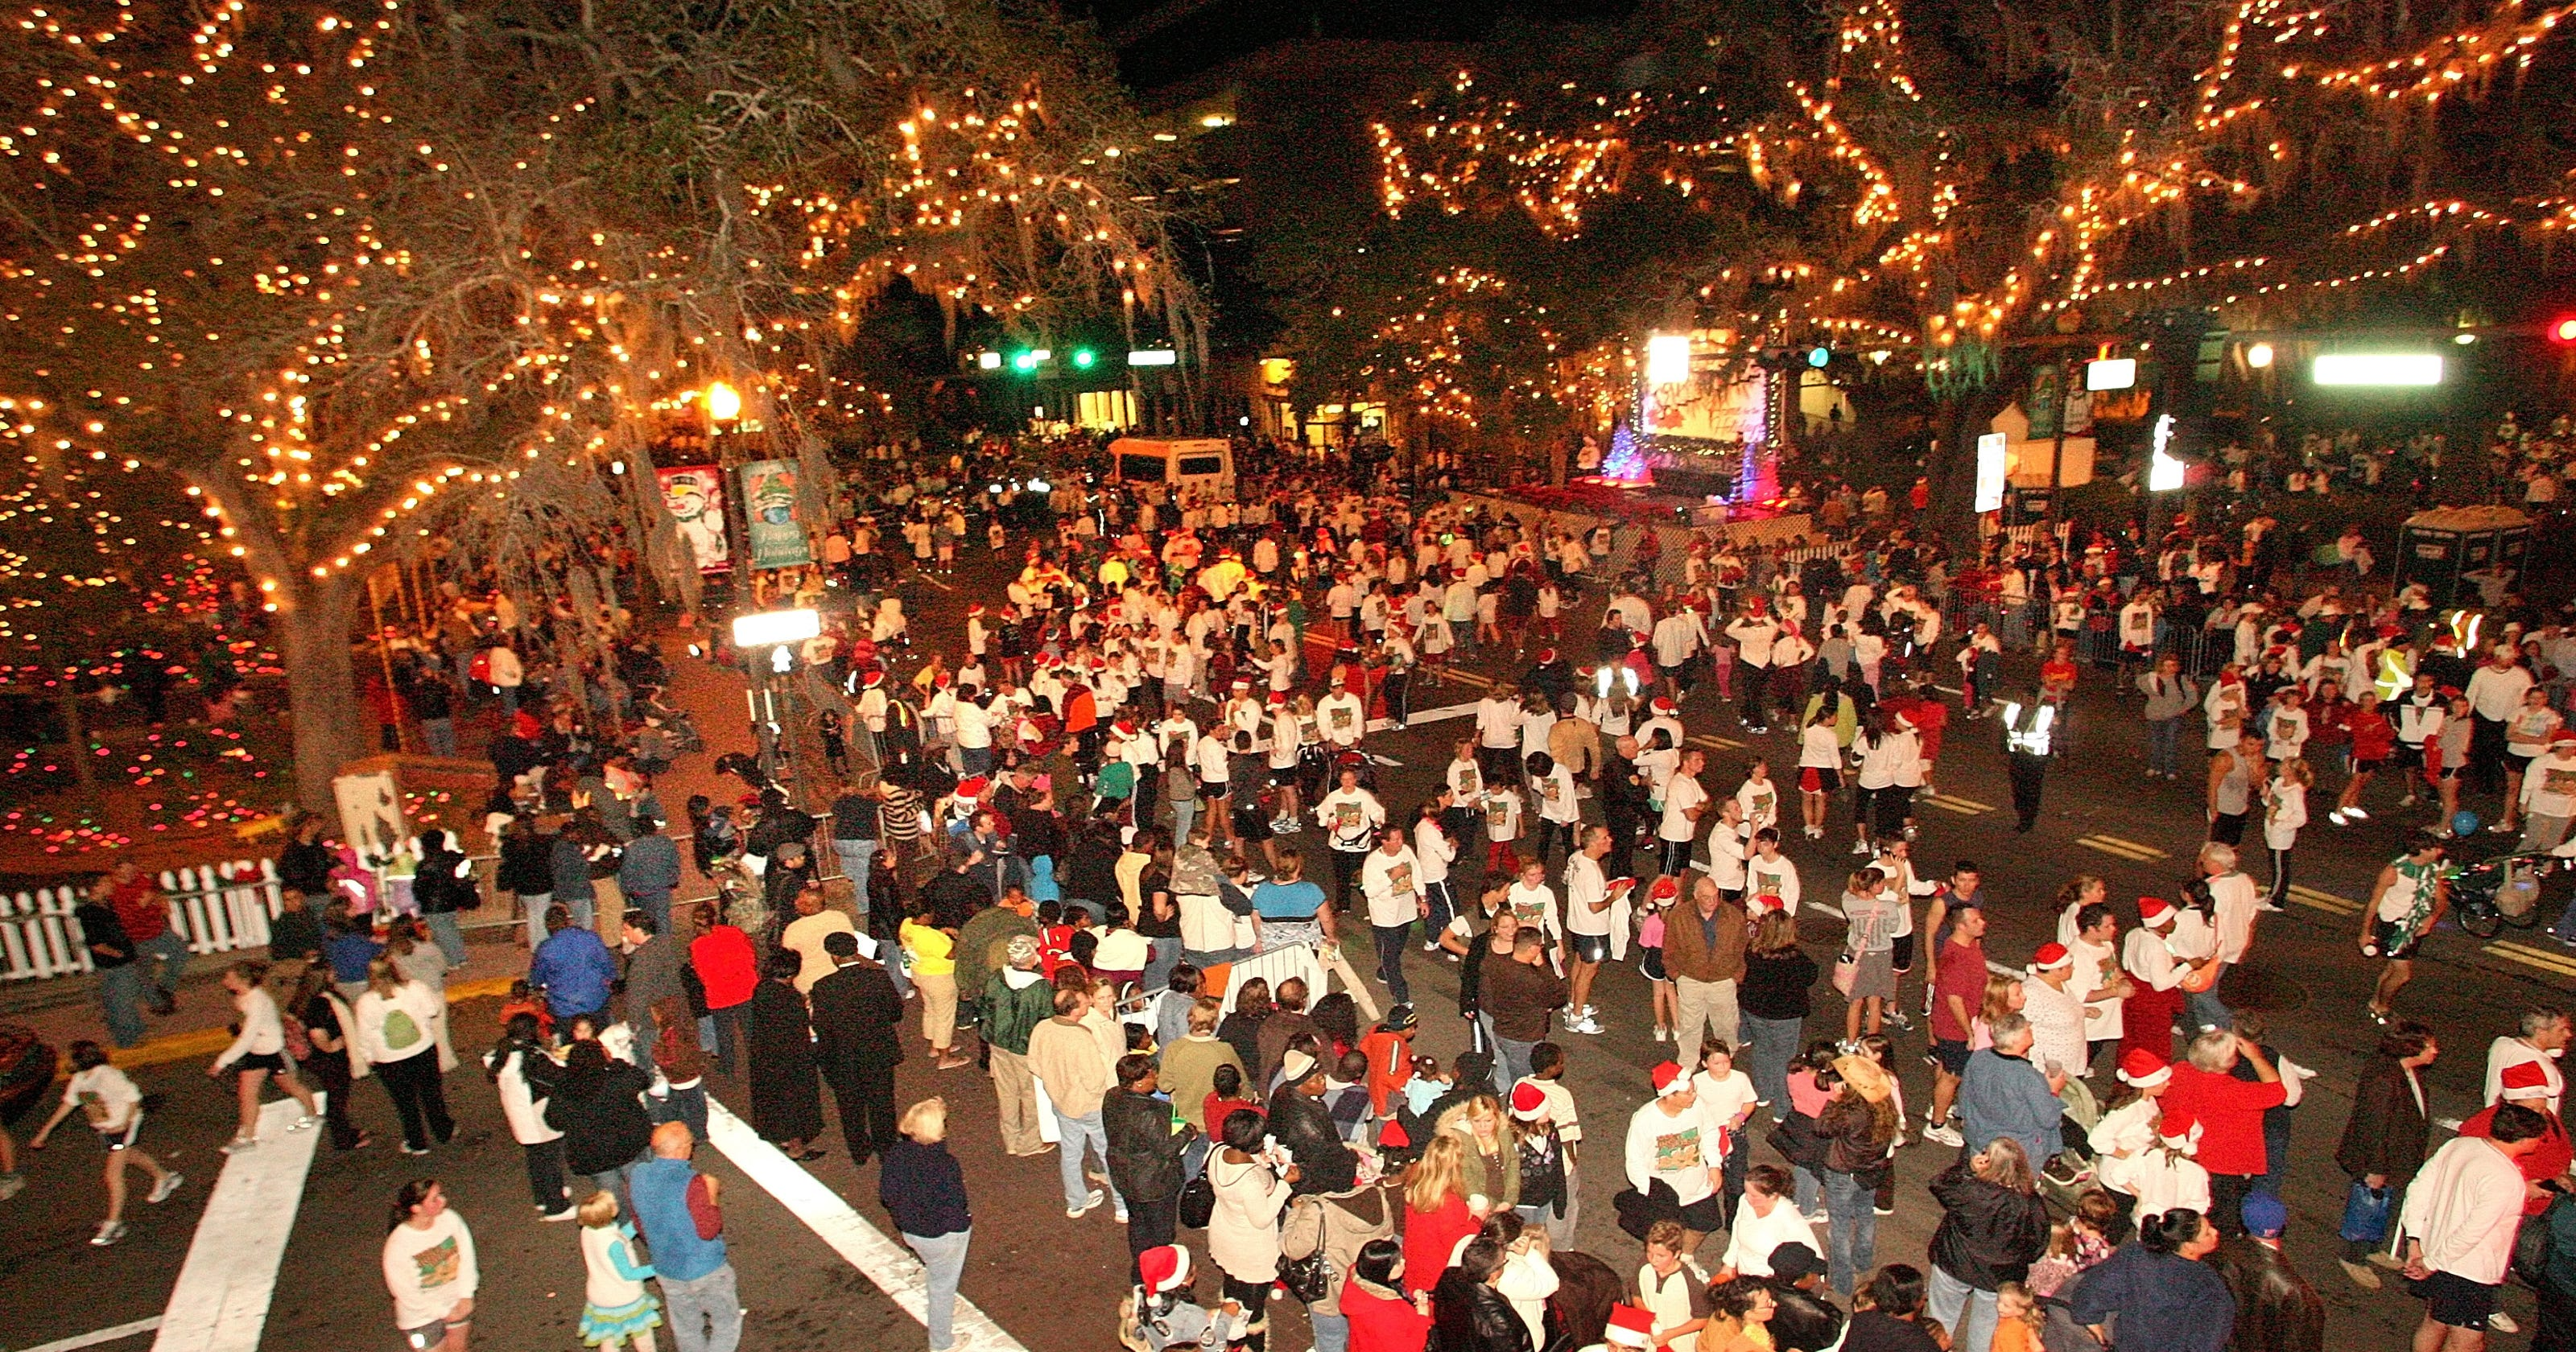 storms could make tallahassee s winter festival a washout